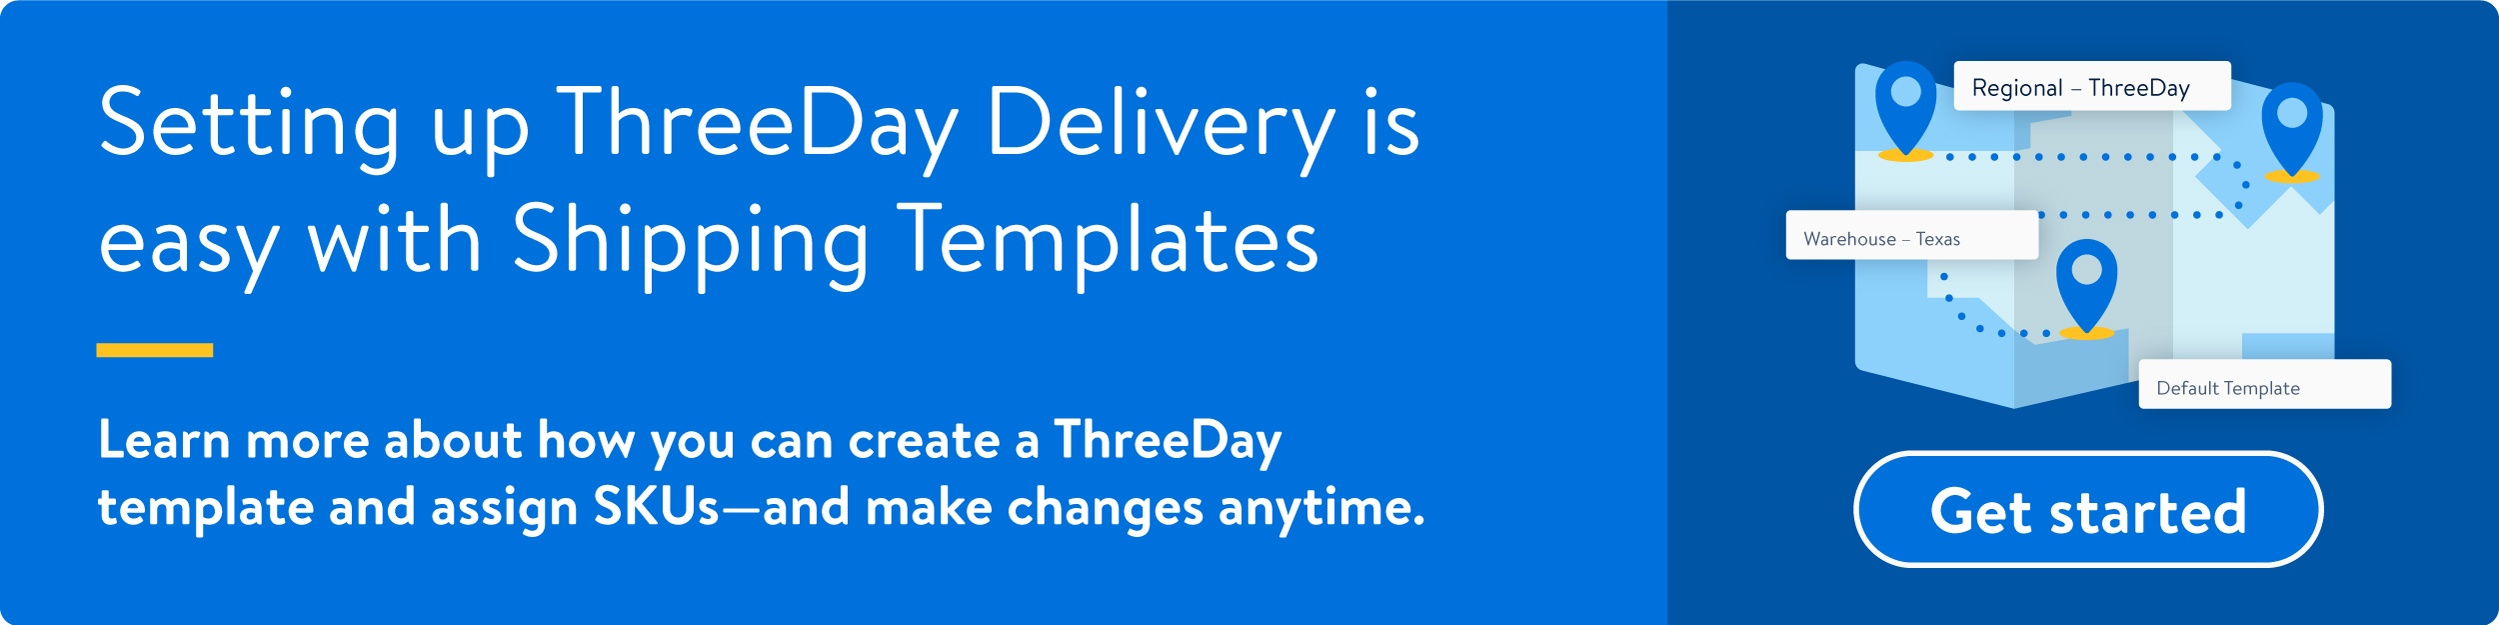 Setting up ThreeDay Delivery is easy with Shipping Templates. Get started.